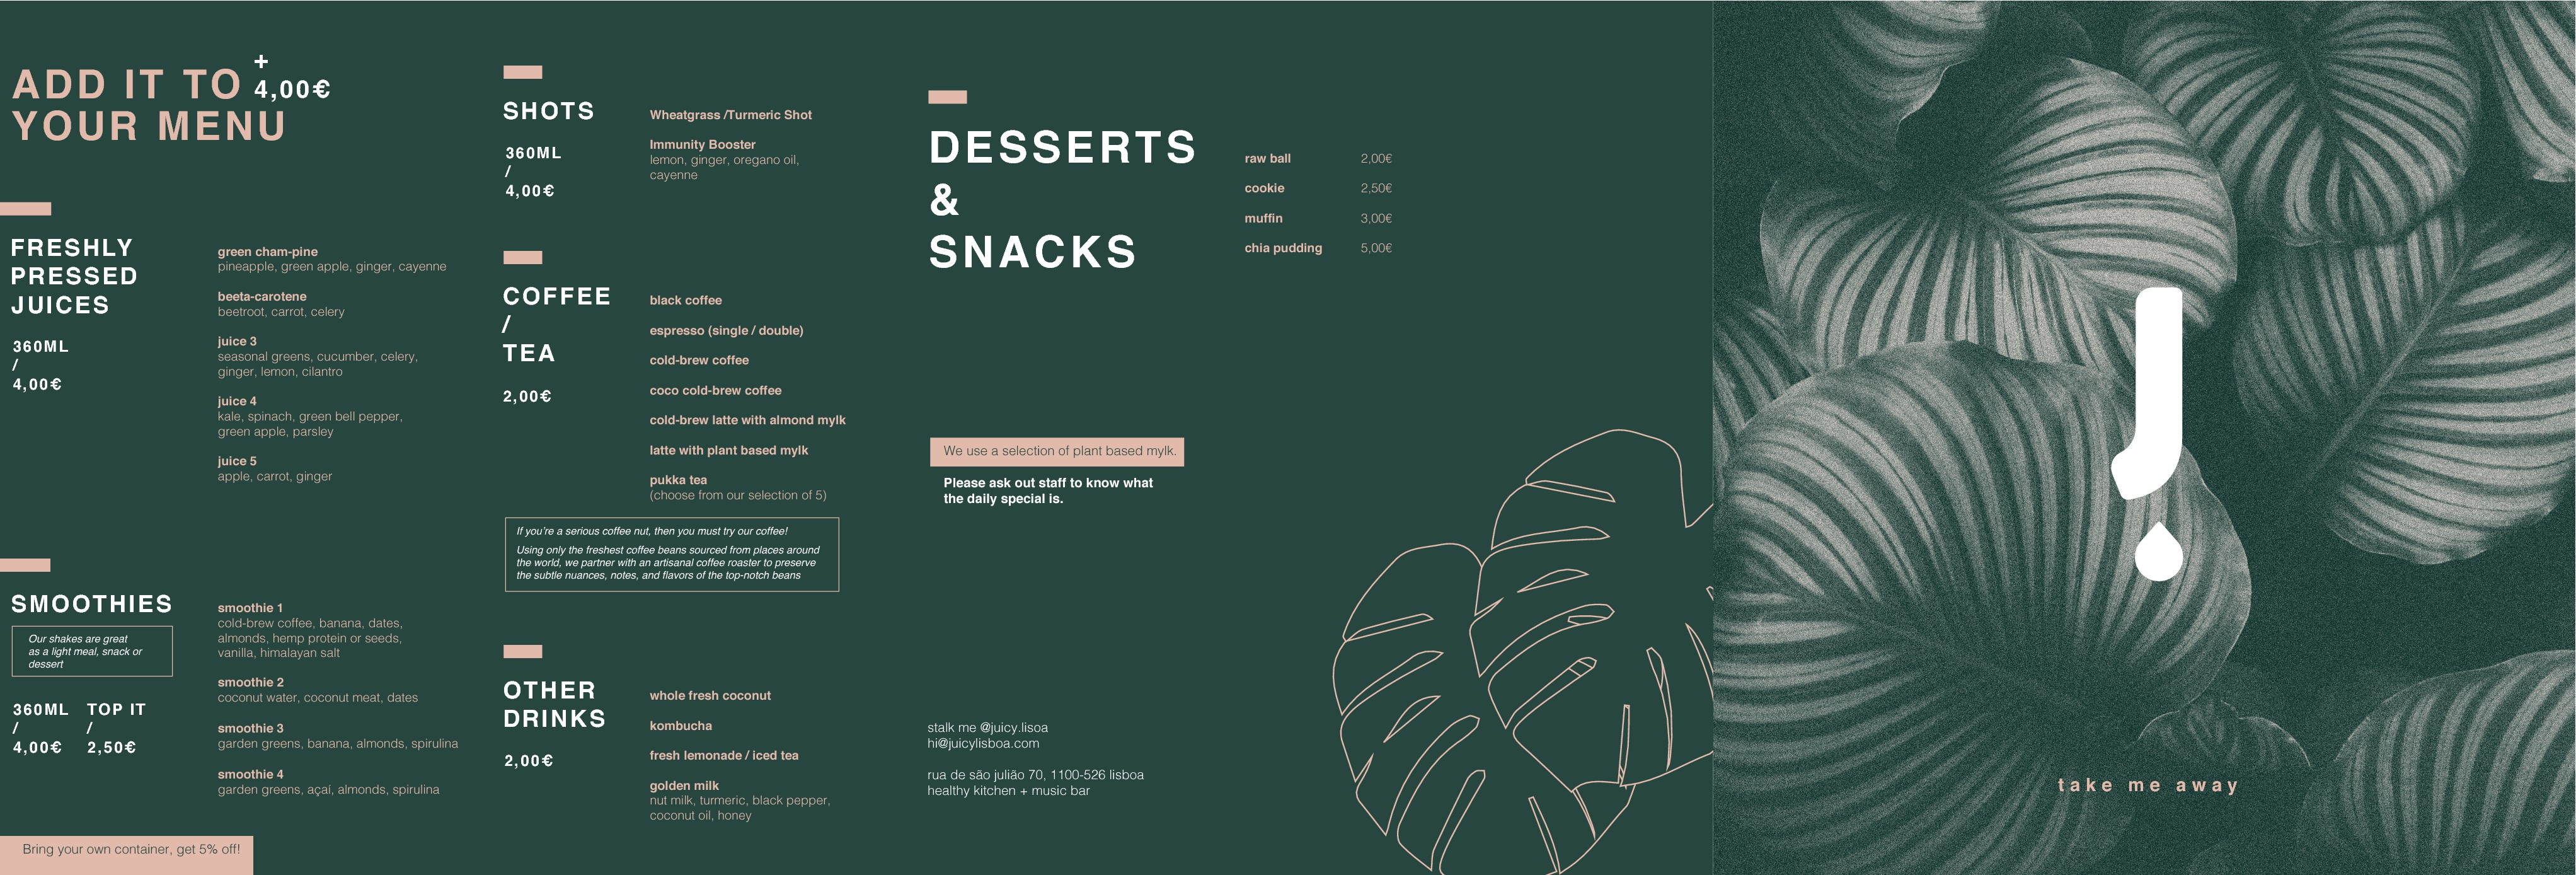 Improve our existing menu design, and save the planet in the same time :)